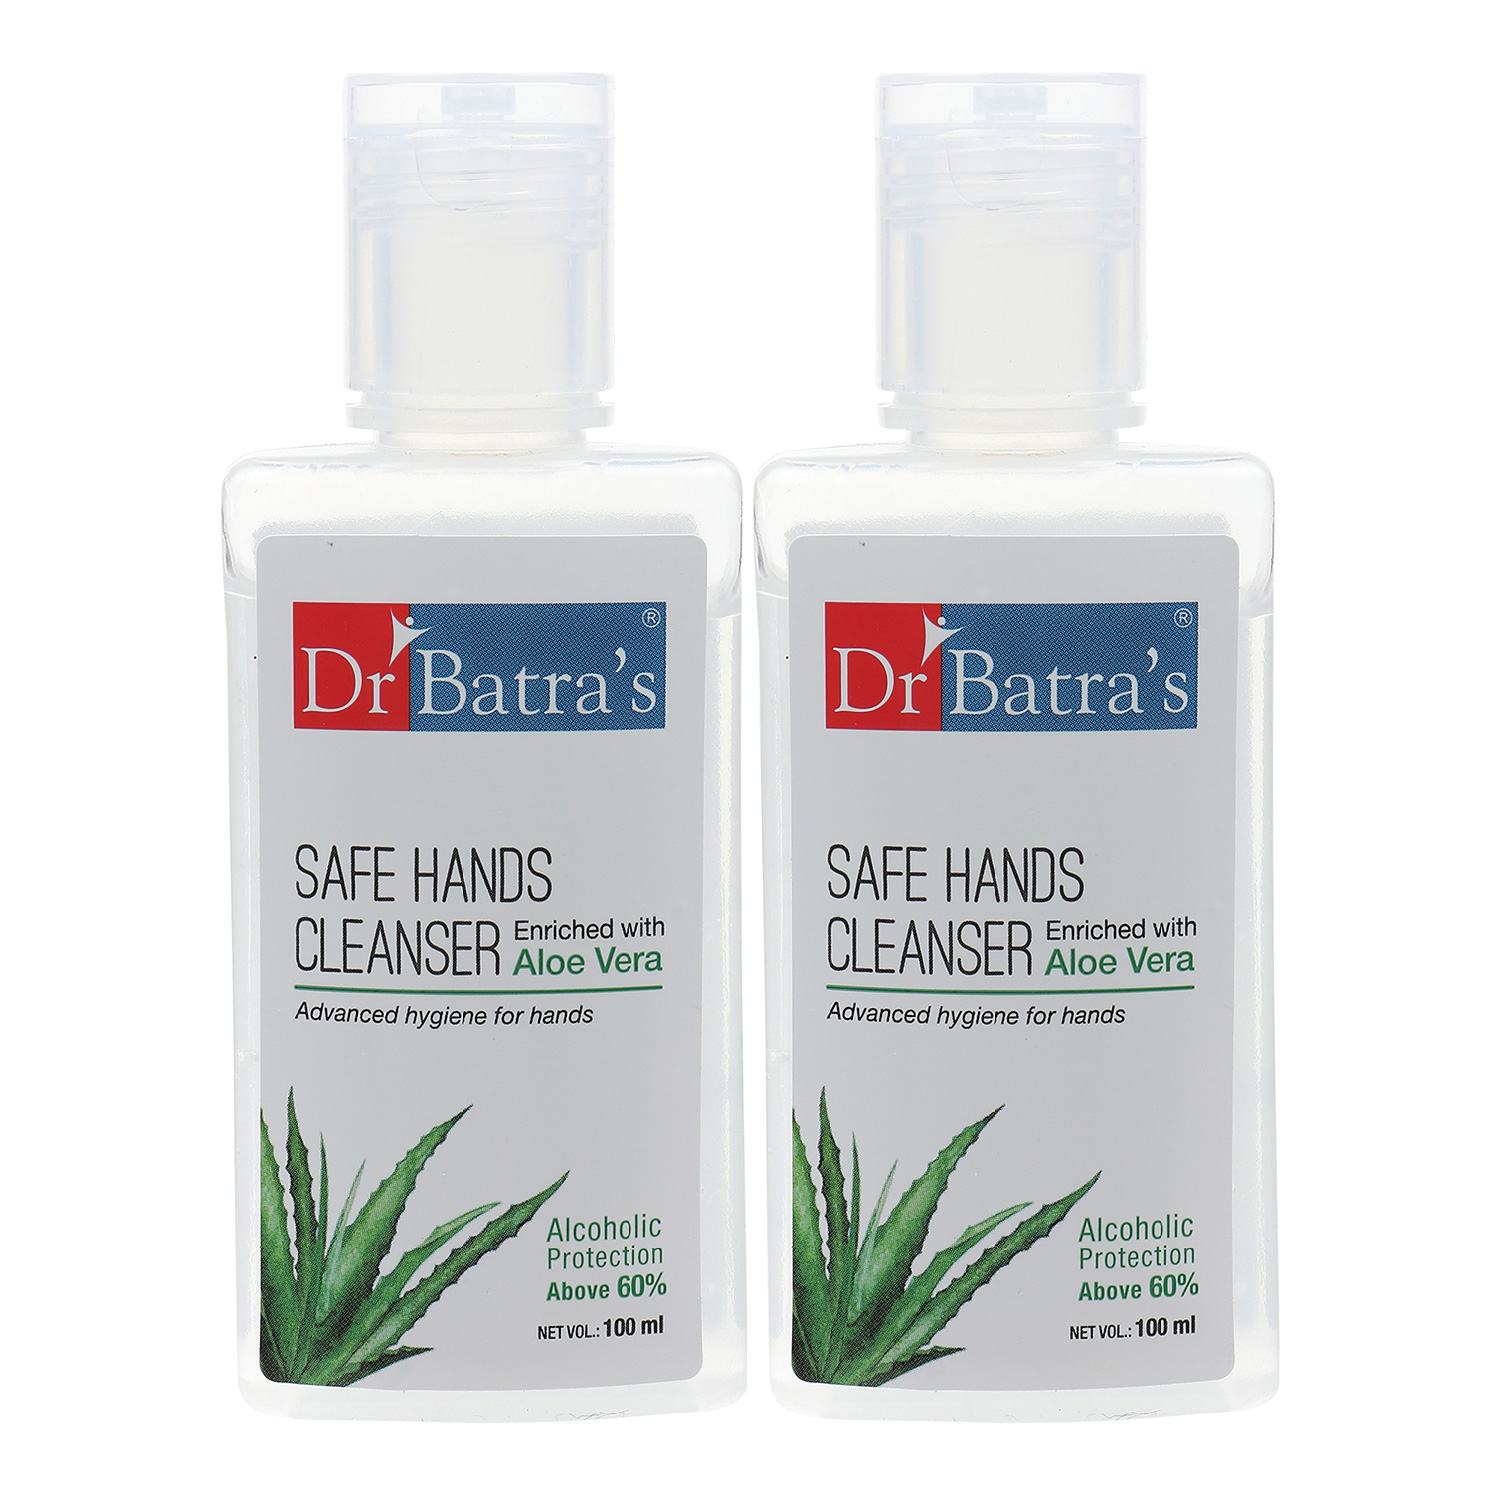 Dr Batra's   Dr Batra's Safe Hands Cleanser Enriched With Aloe vera Alcoholic Protection above 60% Stay Home, Stay Safe- 100 ml (Pack of 2)